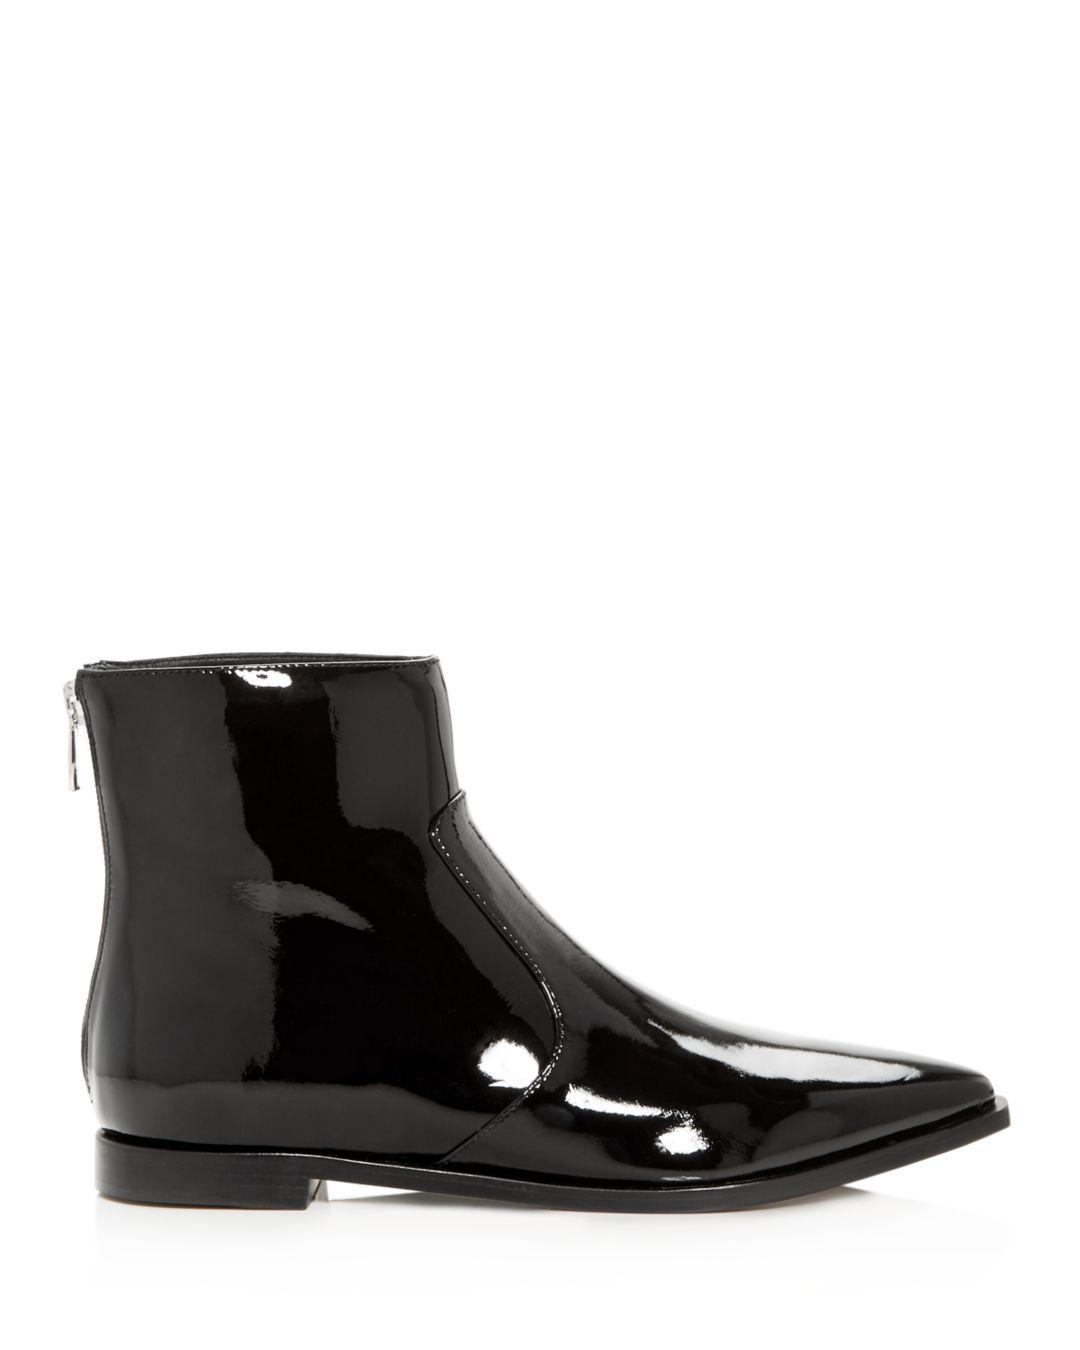 Sigerson Morrison Leather Women's Eranthe Pointed Toe Booties in Black Patent Leather (Black)